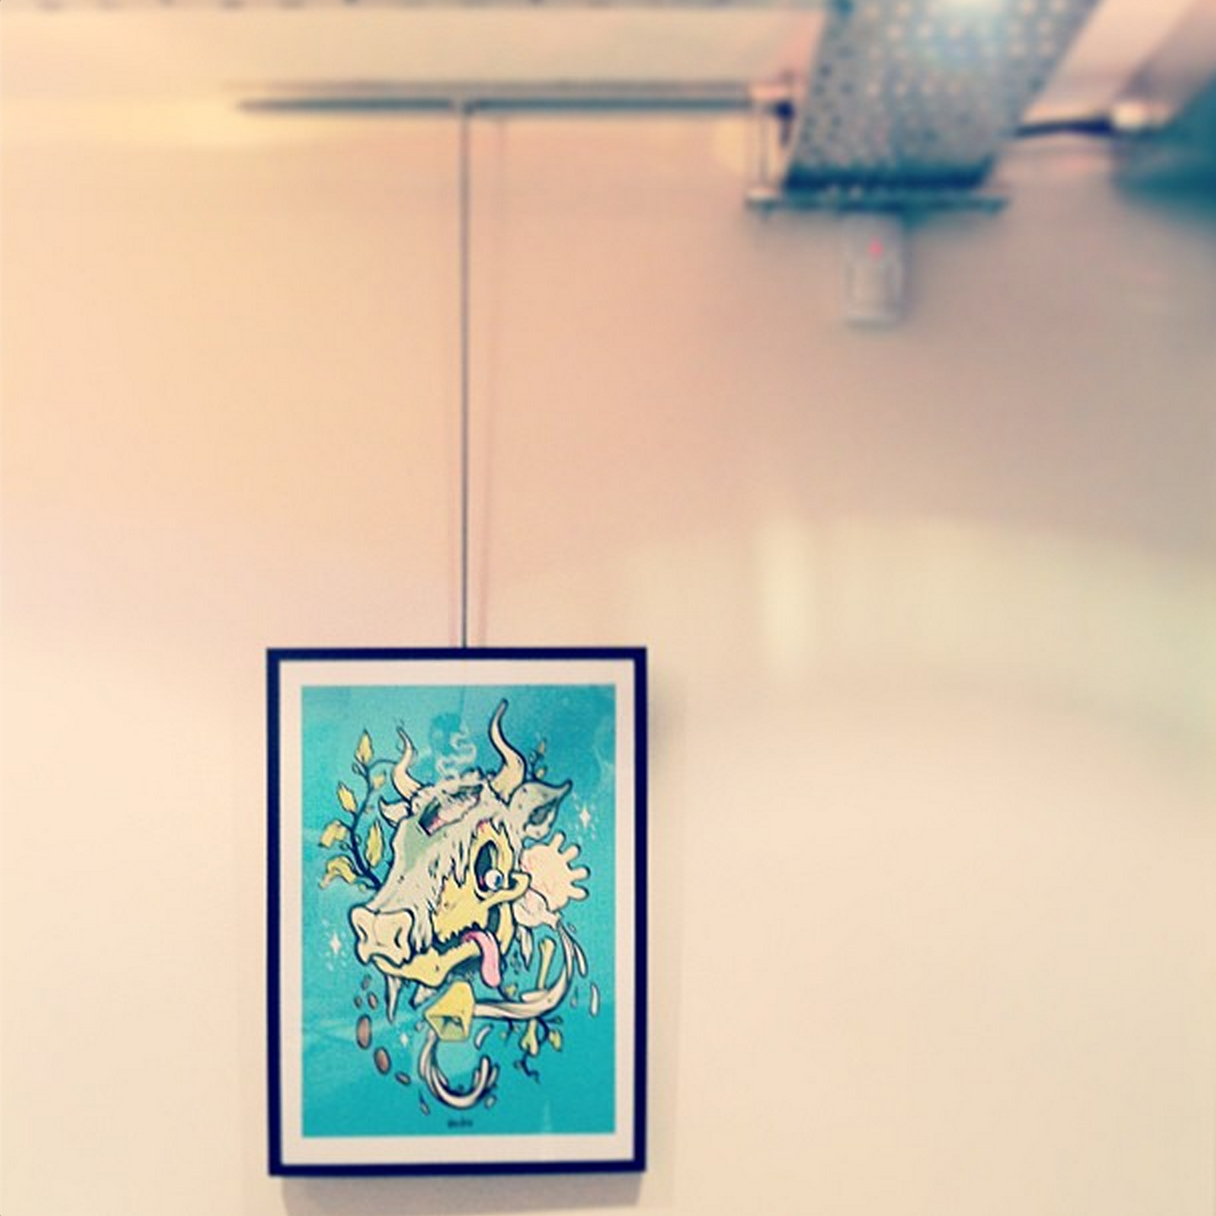 Dan Leo print hanging in the basement of Timber Yard